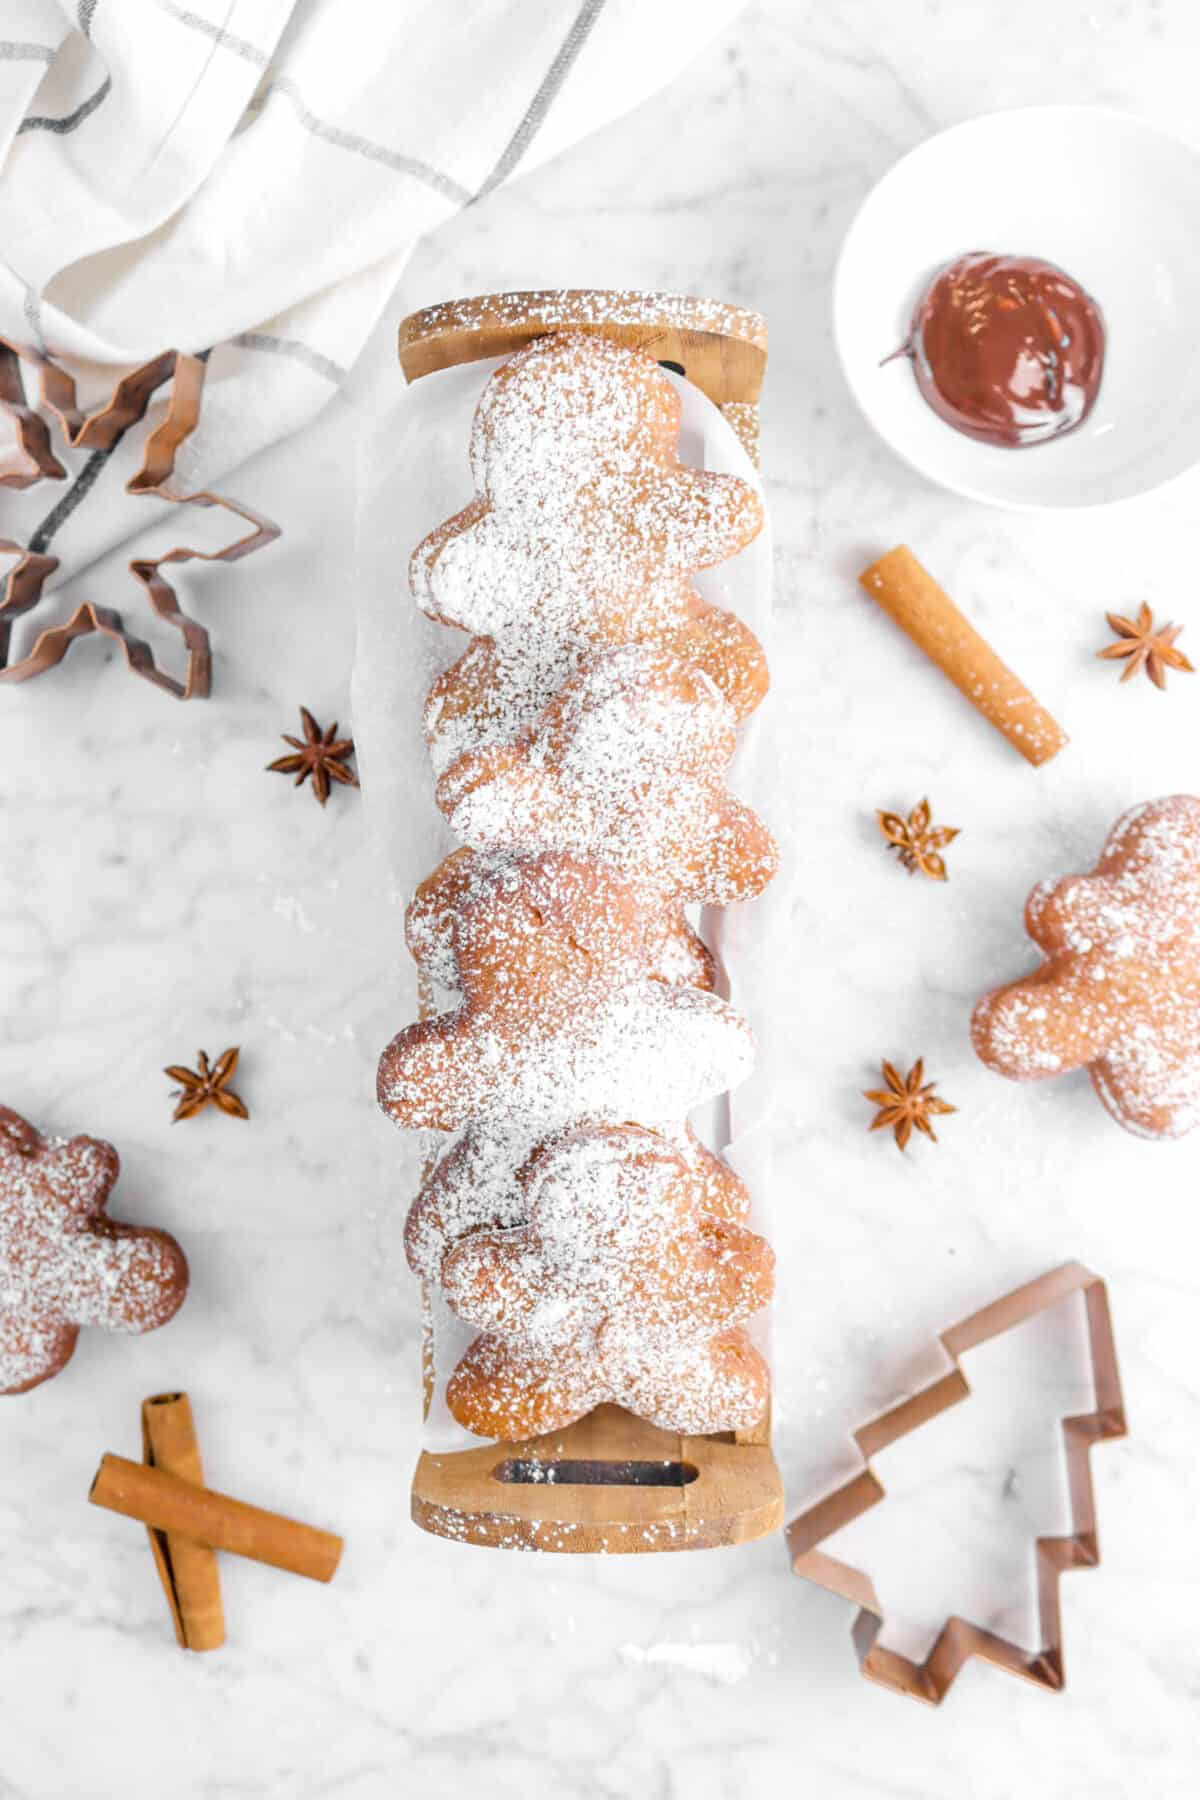 four beignets in wood basket with star anise, cinnamon sticks, copper cutters, two more beignets, and napkin on counter